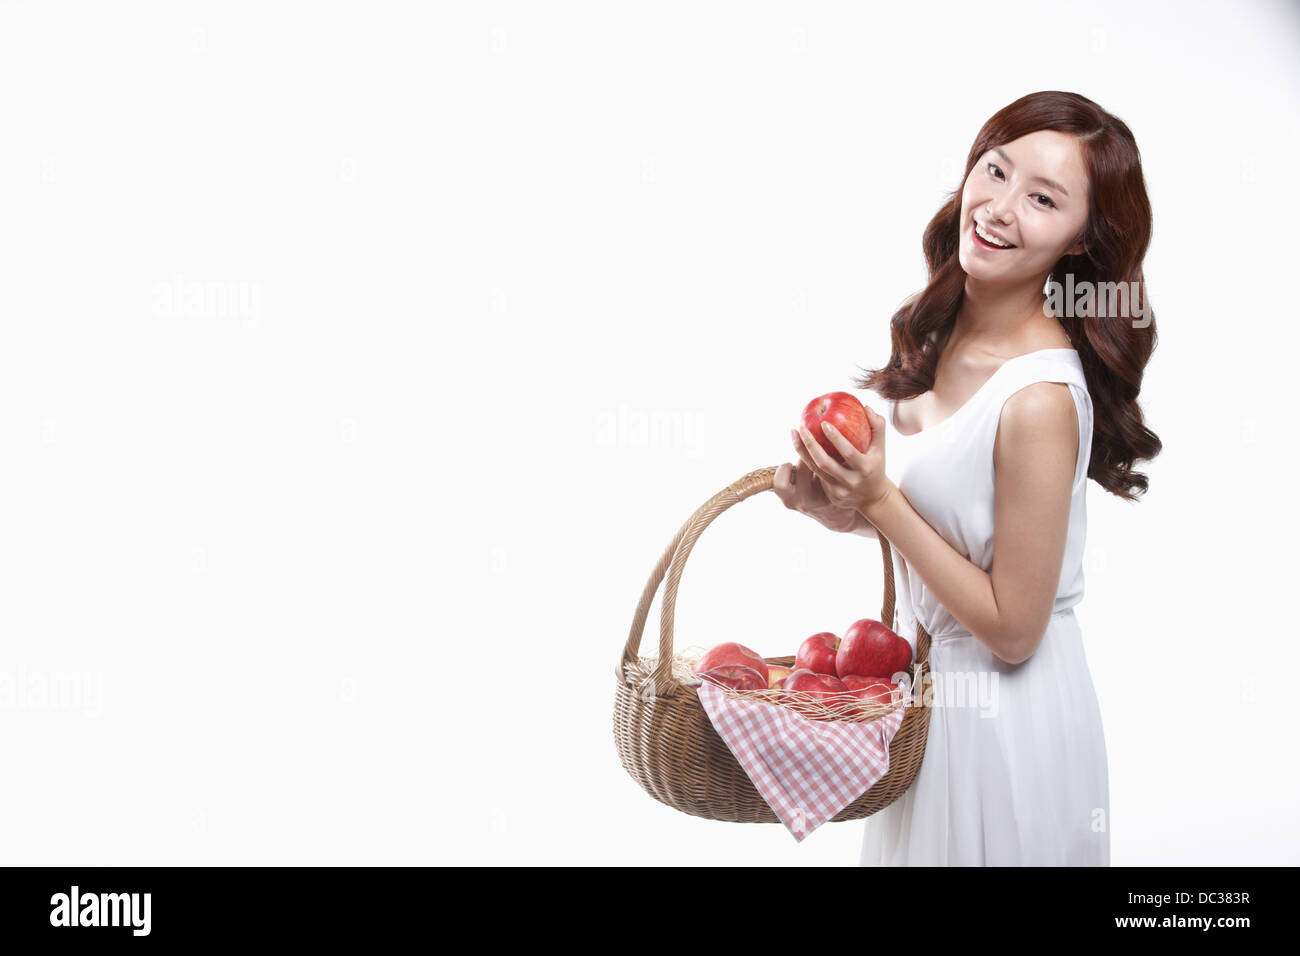 a lady in white dress holding a basket of apples - Stock Image